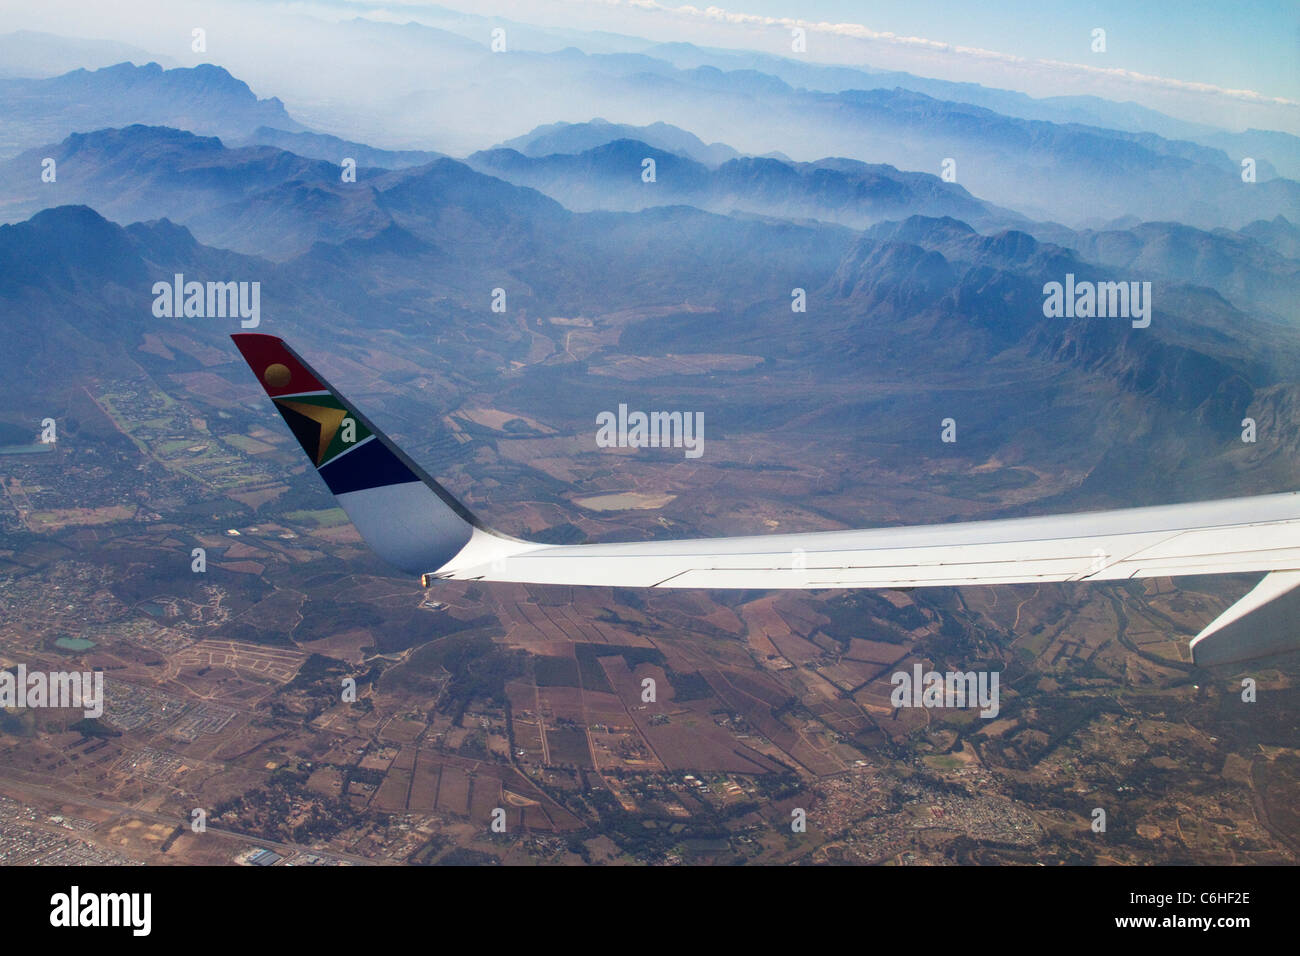 The wing tip of a SAA jet viewed against the Cape Fold mountains near Cape Town - Stock Image